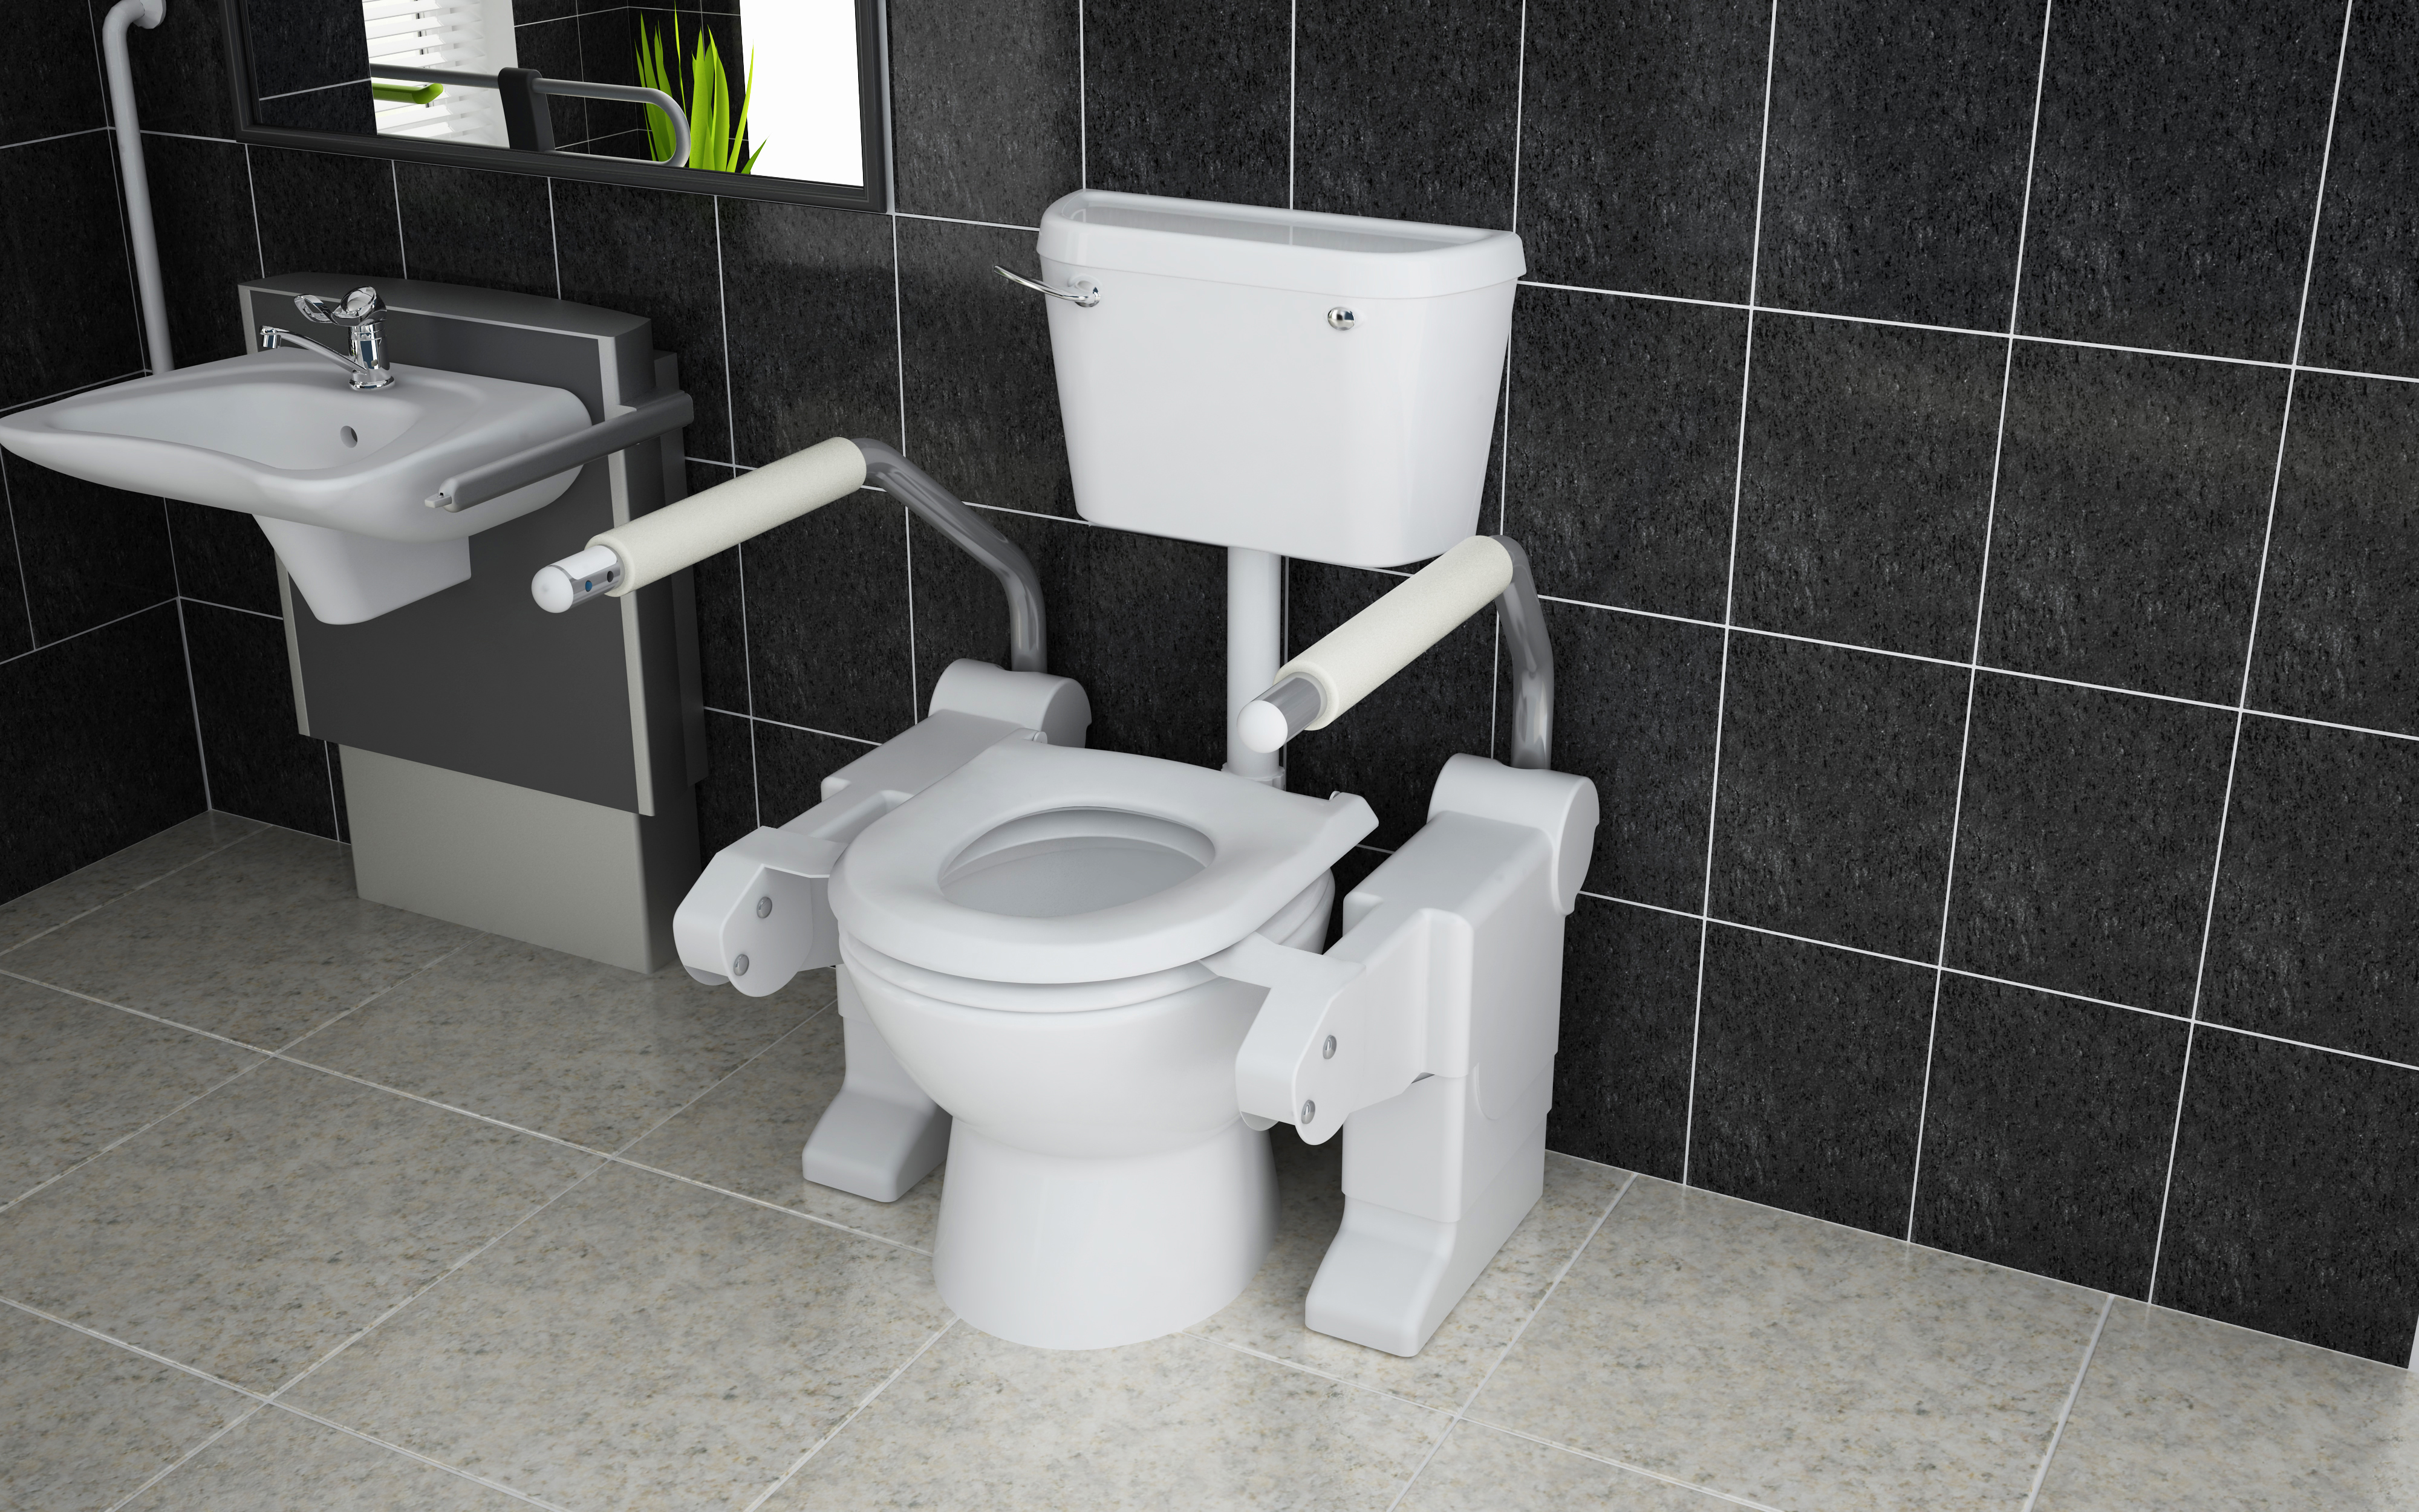 FEATURE: Style and functionality driving accessible toilet market ...